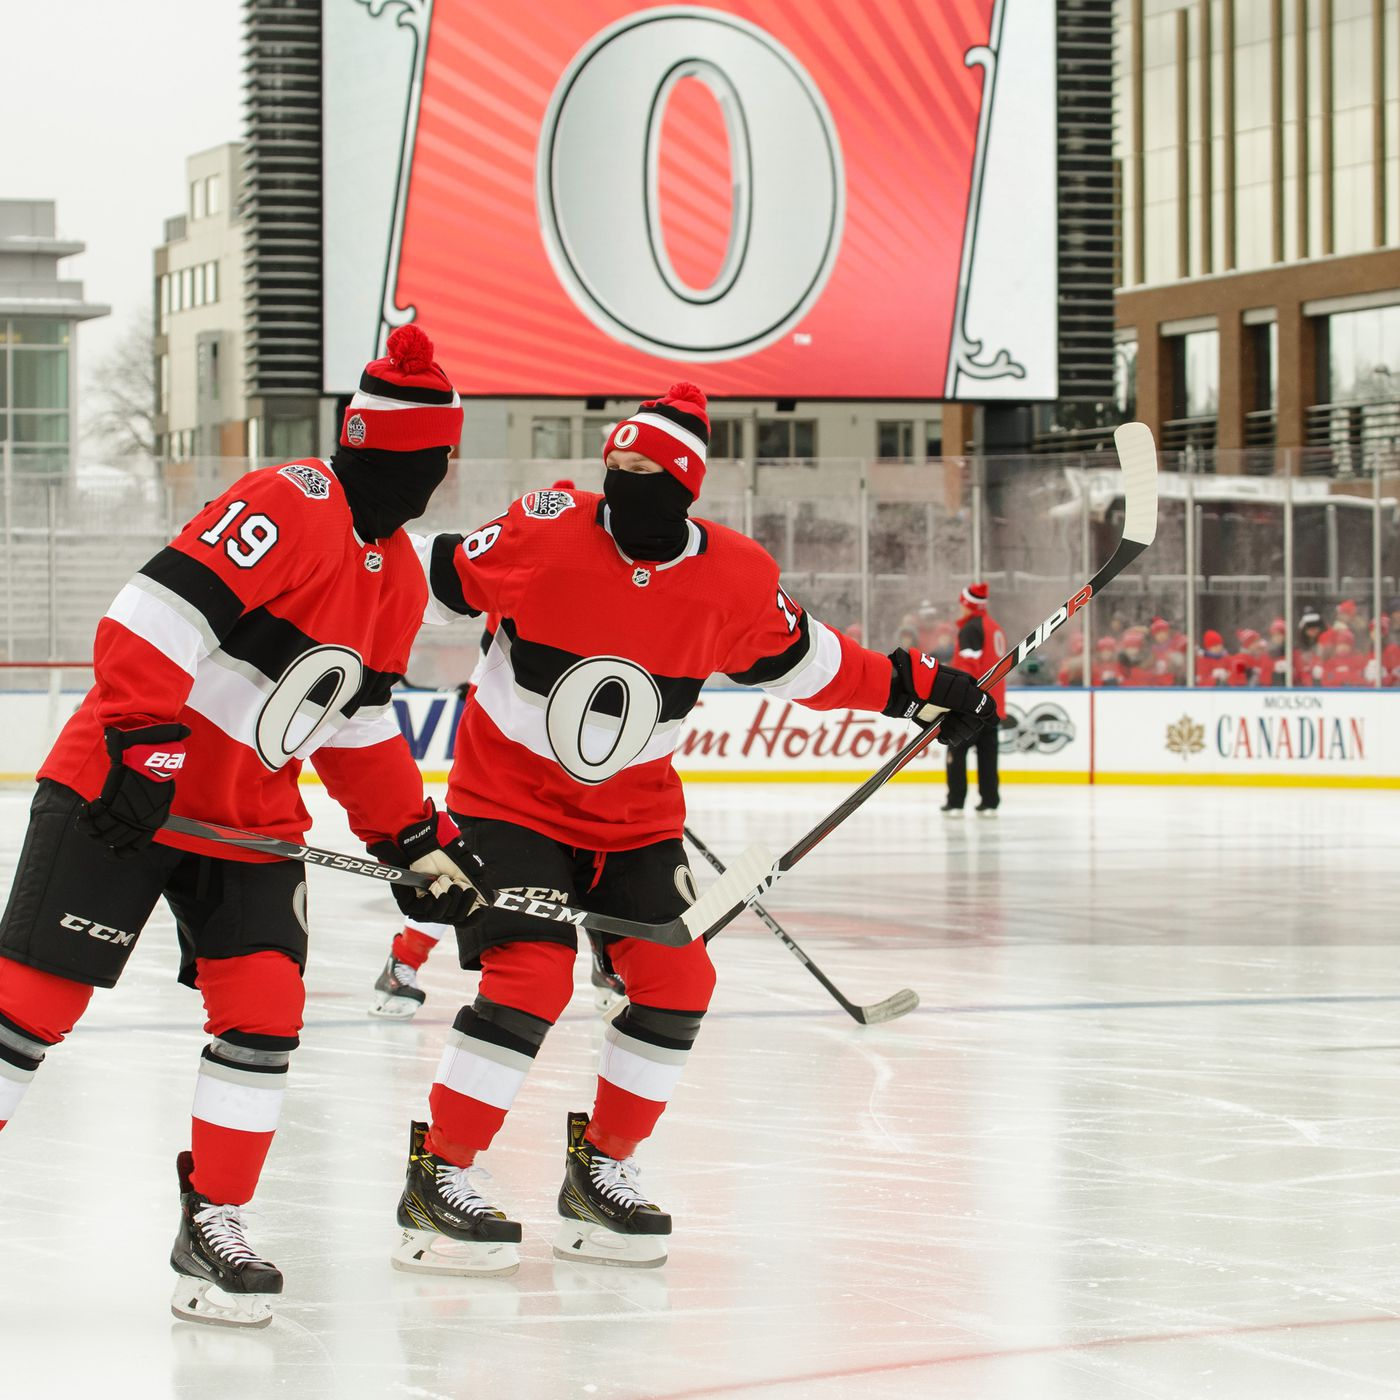 Canadiens Vs Senators 2017 Live Stream Time Tv Channel And How To Watch Nhl 100 Classic Online Sbnation Com